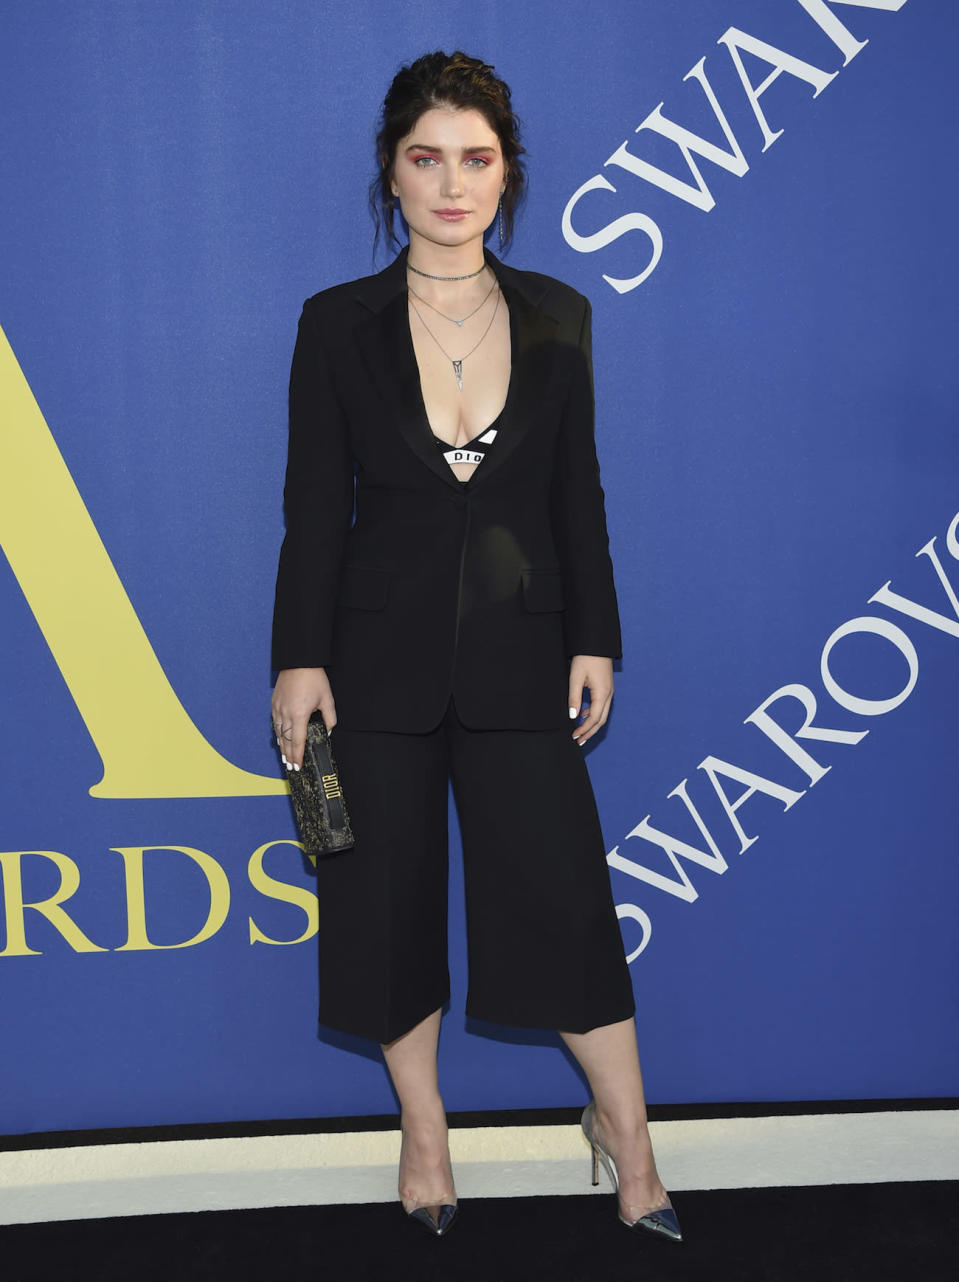 Eve Hewson shows confidence.  Has he heard it from his father?  (Image: AP Photos)